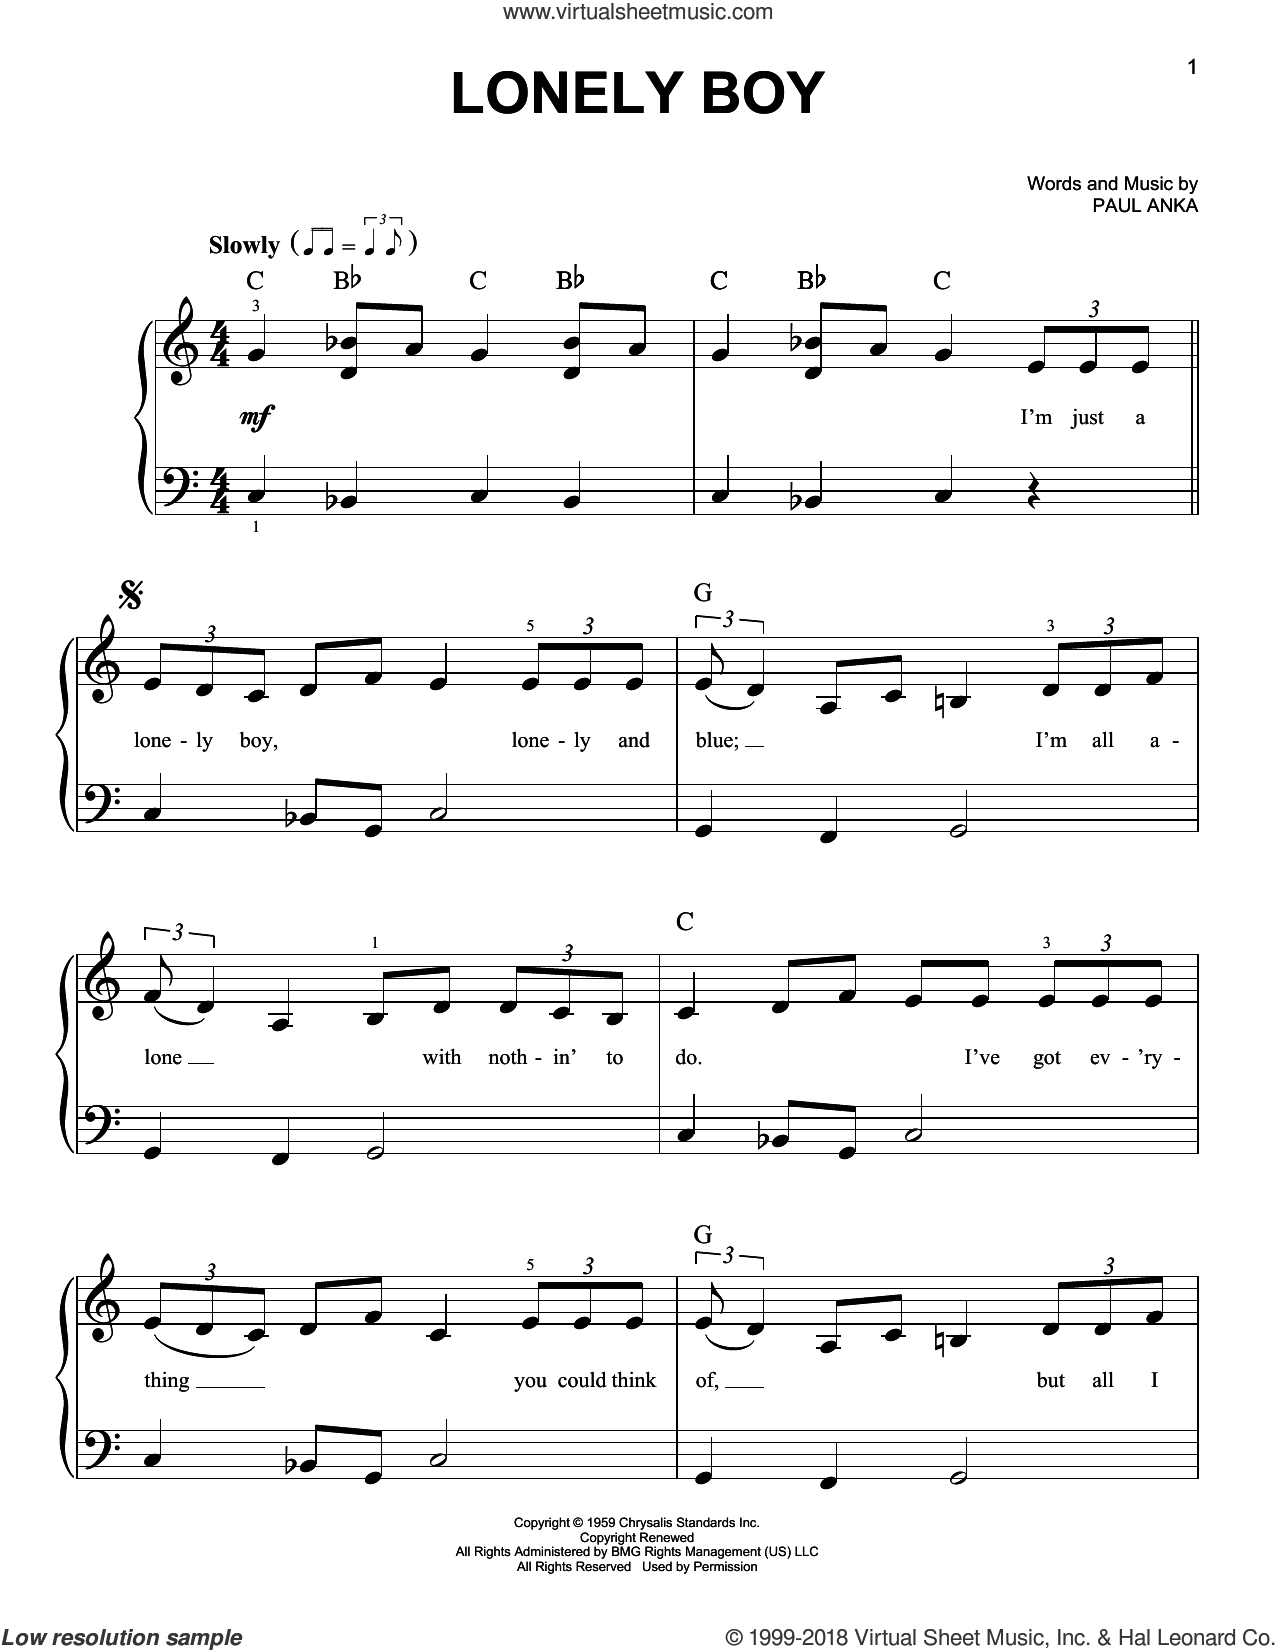 Lonely Boy sheet music for piano solo by Paul Anka, beginner skill level